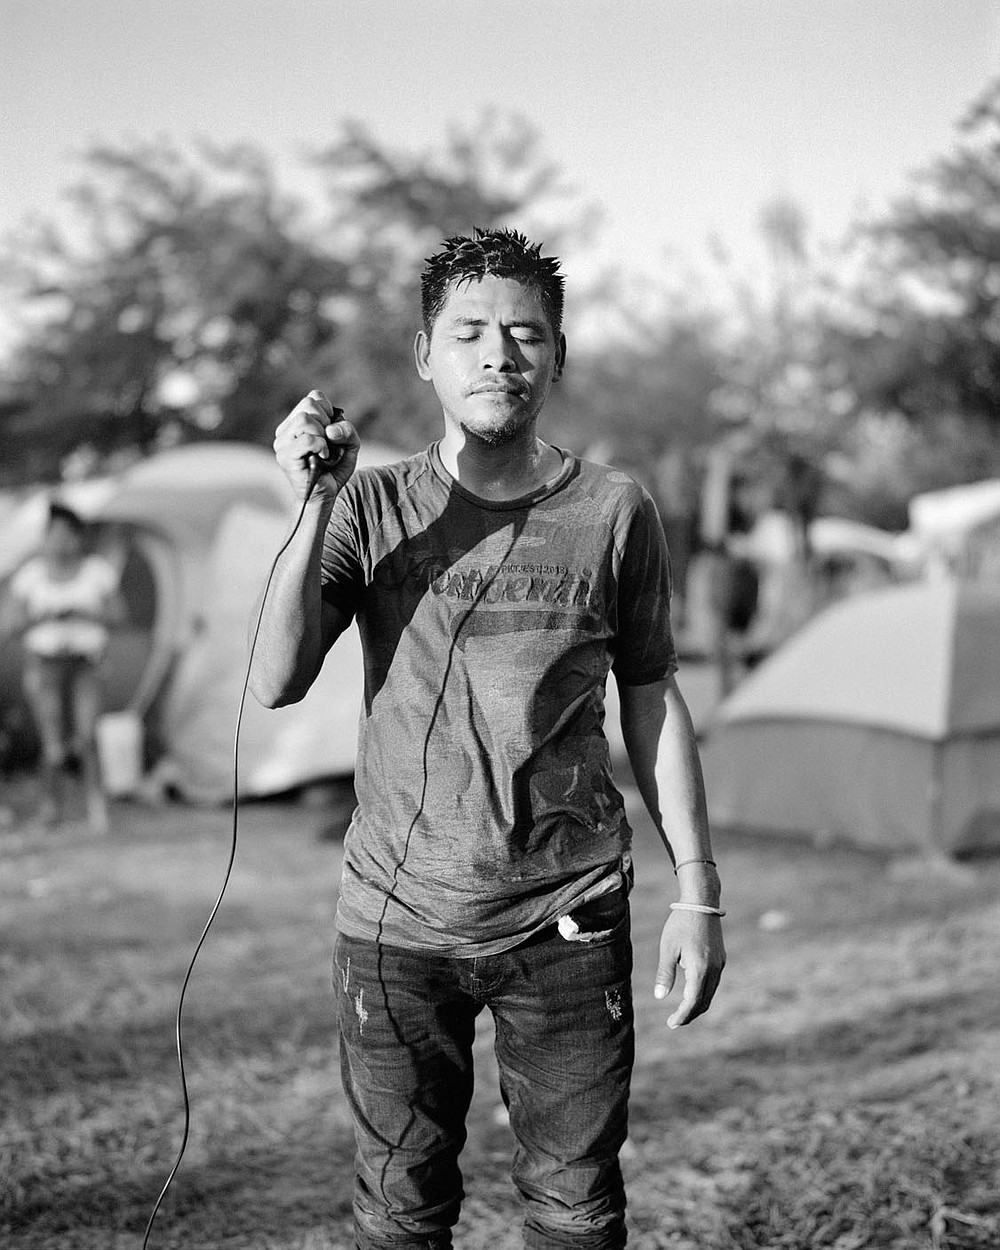 Adam Ferguson, Linifir L?pez, 33, informal migrant camp, Reynosa, Mexico, 2021, 60 x 48 inches, archival pigment print, courtesy of the artist. this image is part of Migrantes, an exhibit at Windgate Museum of Art at Hendrix college DO NOT CROP